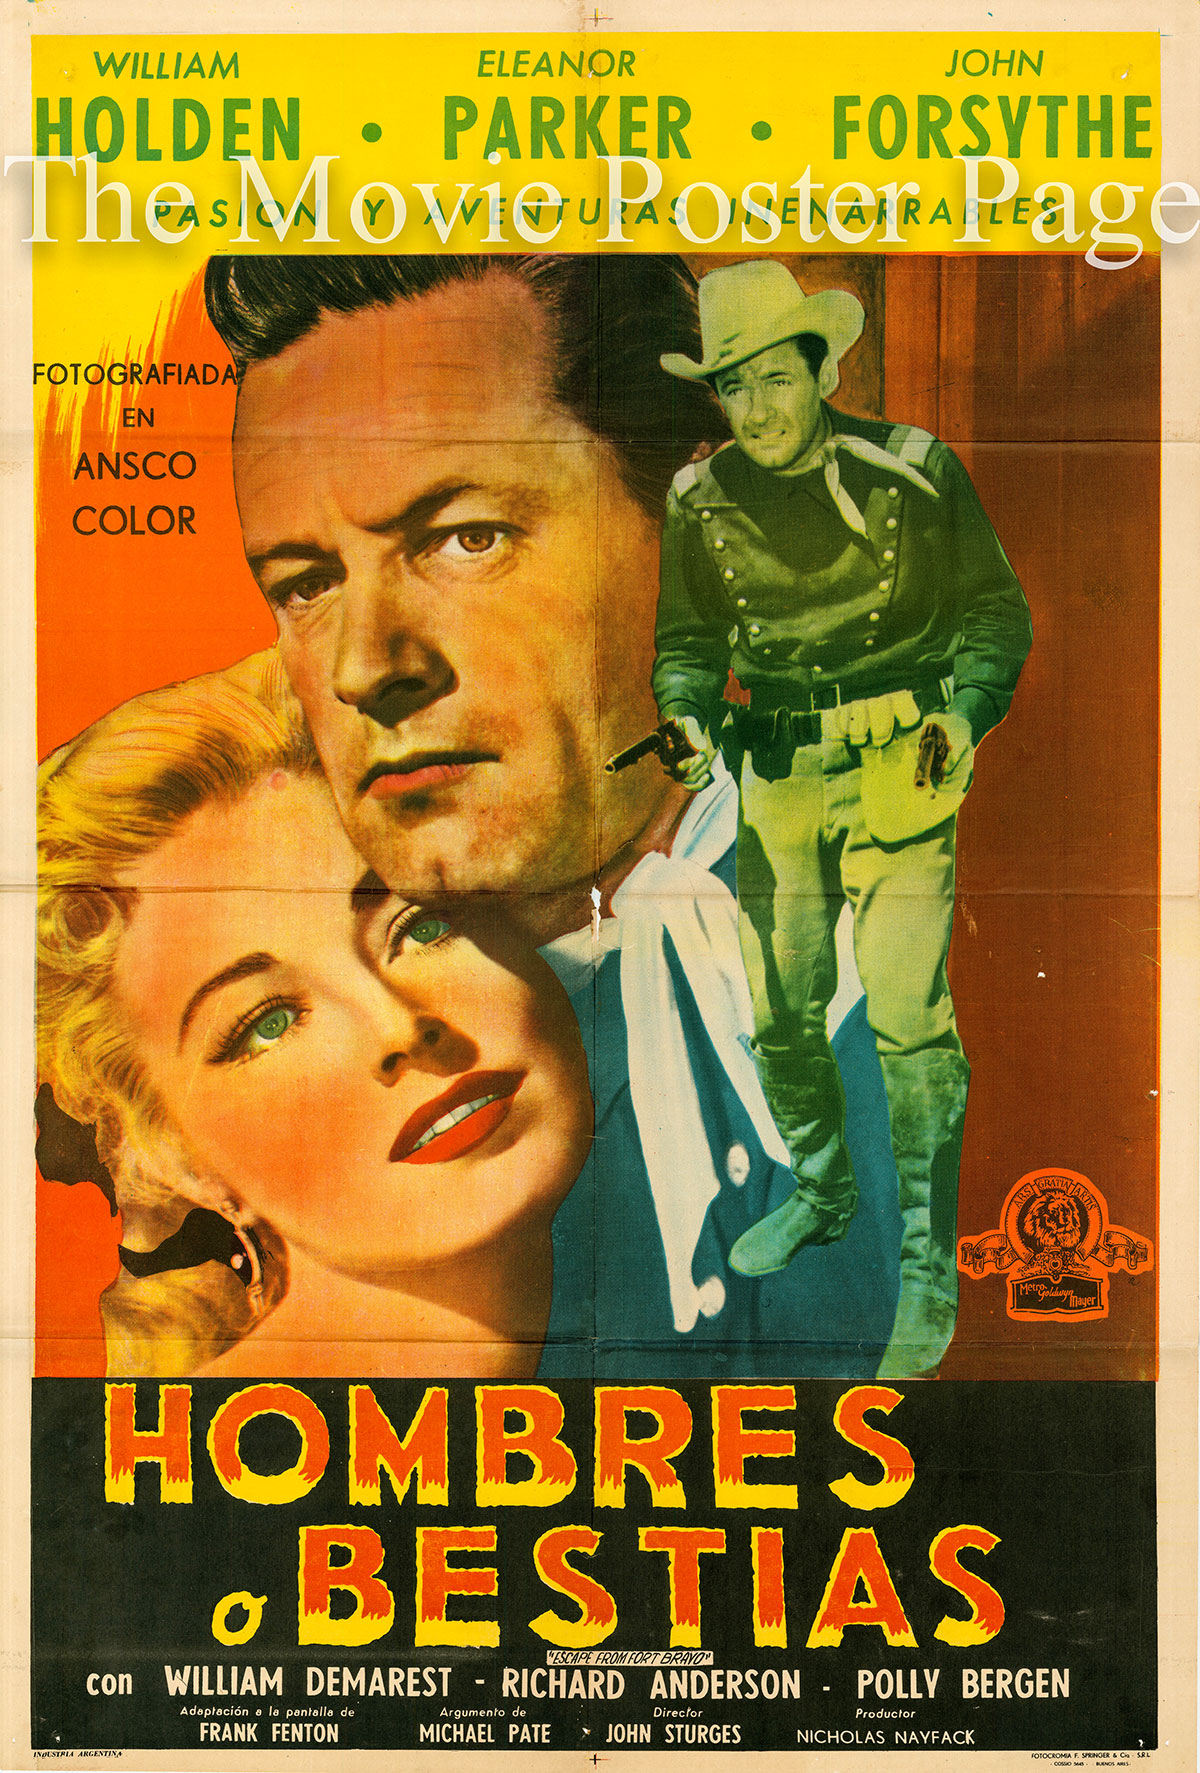 Pictured is an Argentine one-sheet poster for the 1953 John Sturges film Escape from Fort Bravo starring William Holden.